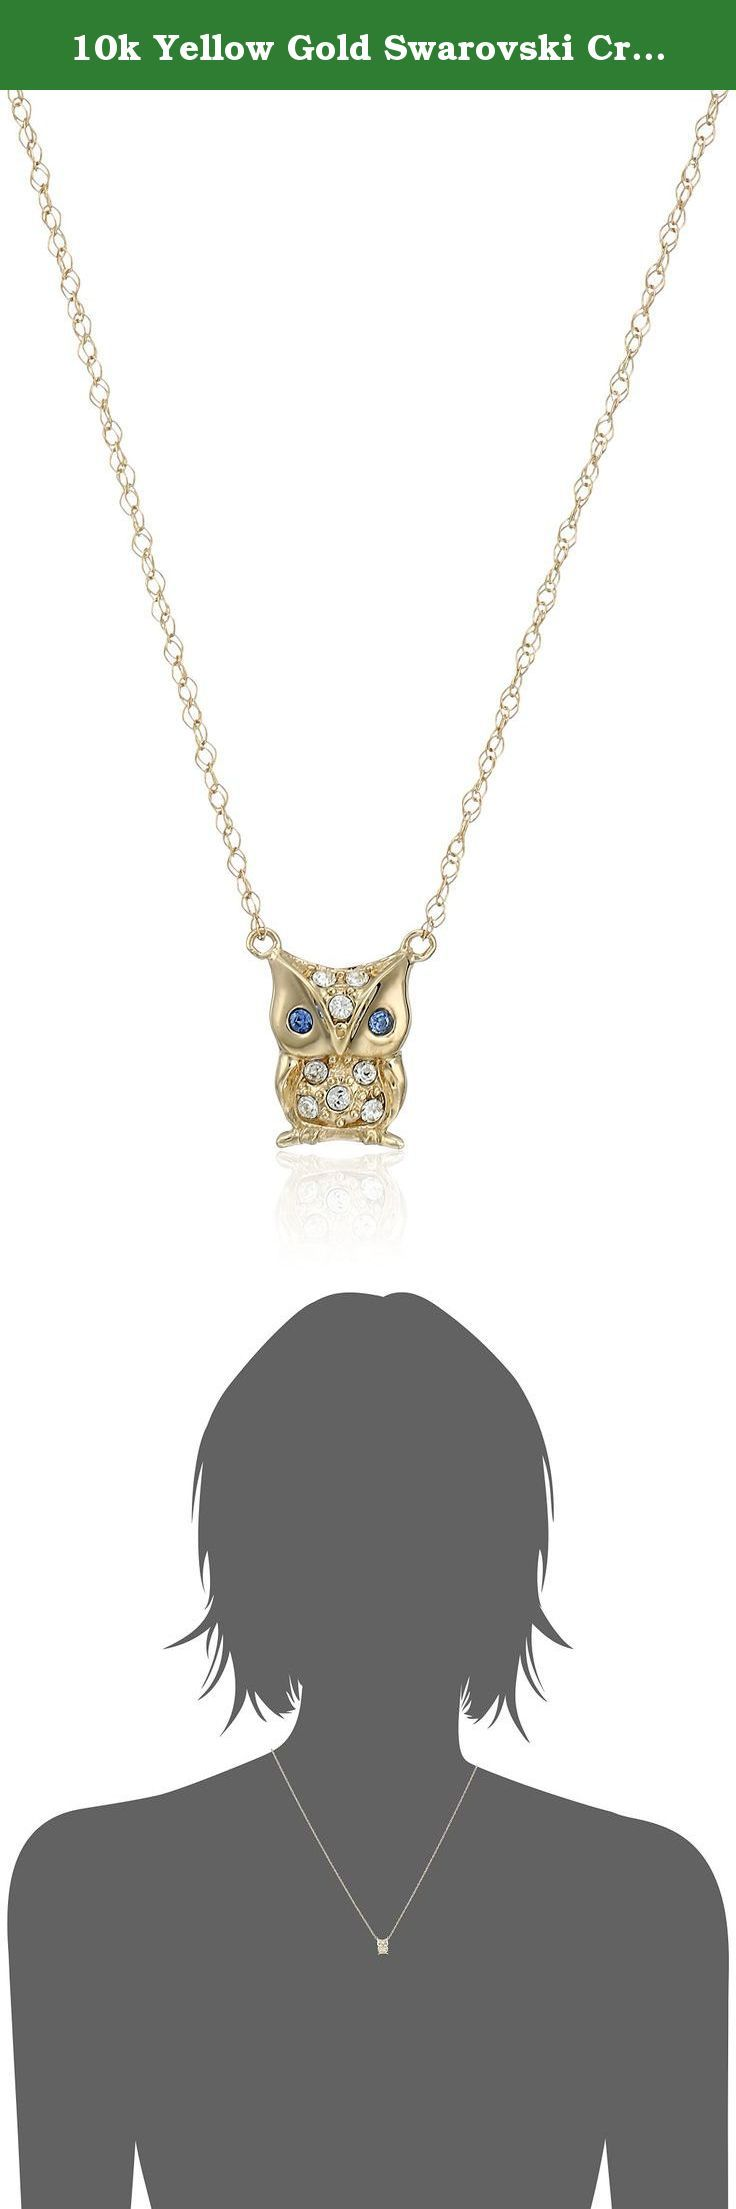 "10k Yellow Gold Swarovski Crystal Owl Necklace, 17"". Hand-polished pure 10k yellow gold; Italian gold chain."